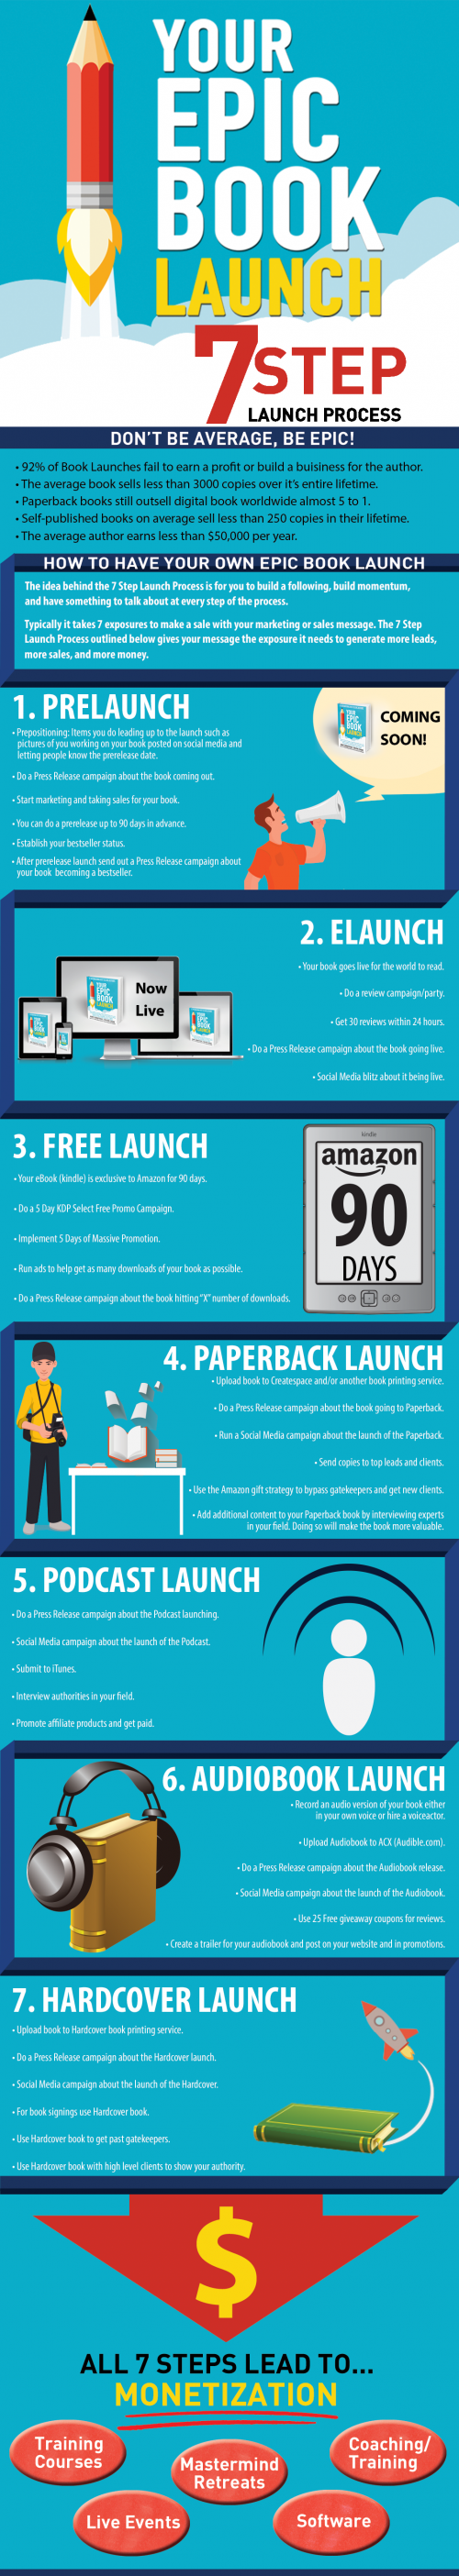 Epic Book Launch 7 Step Infographic'